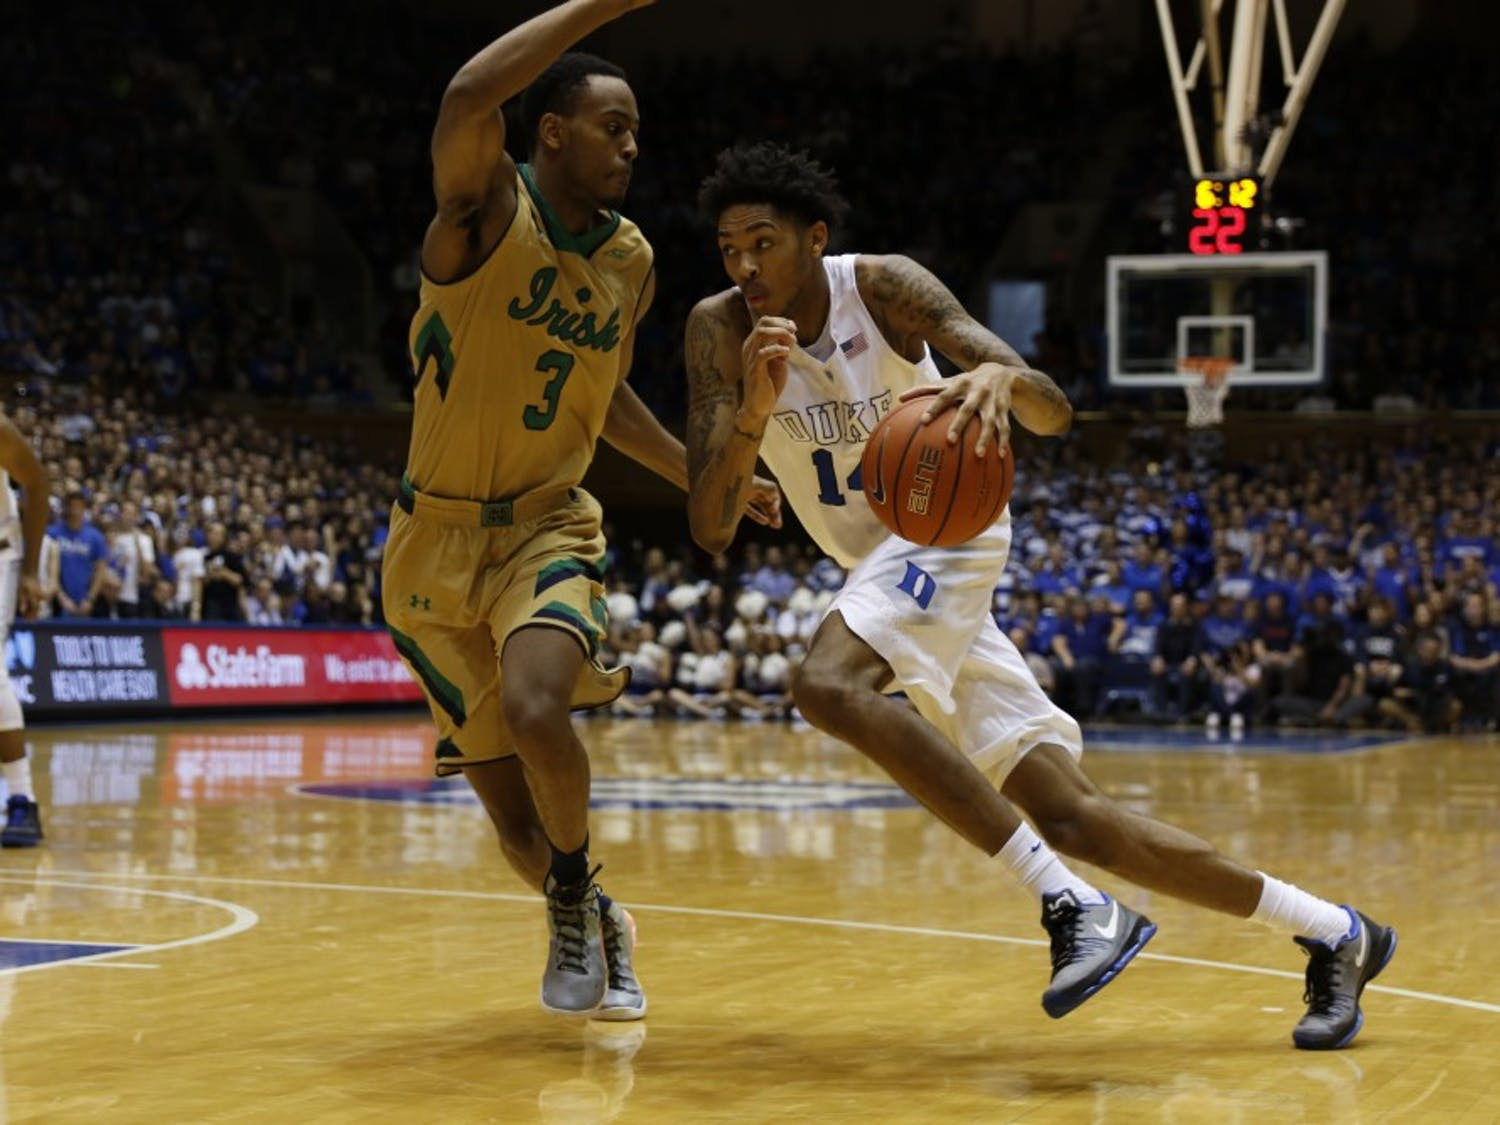 Duke freshman Brandon Ingram andLouisiana State rookie Ben Simmons are required to go to at least one year of school before being eligible to make the move to the NBA.